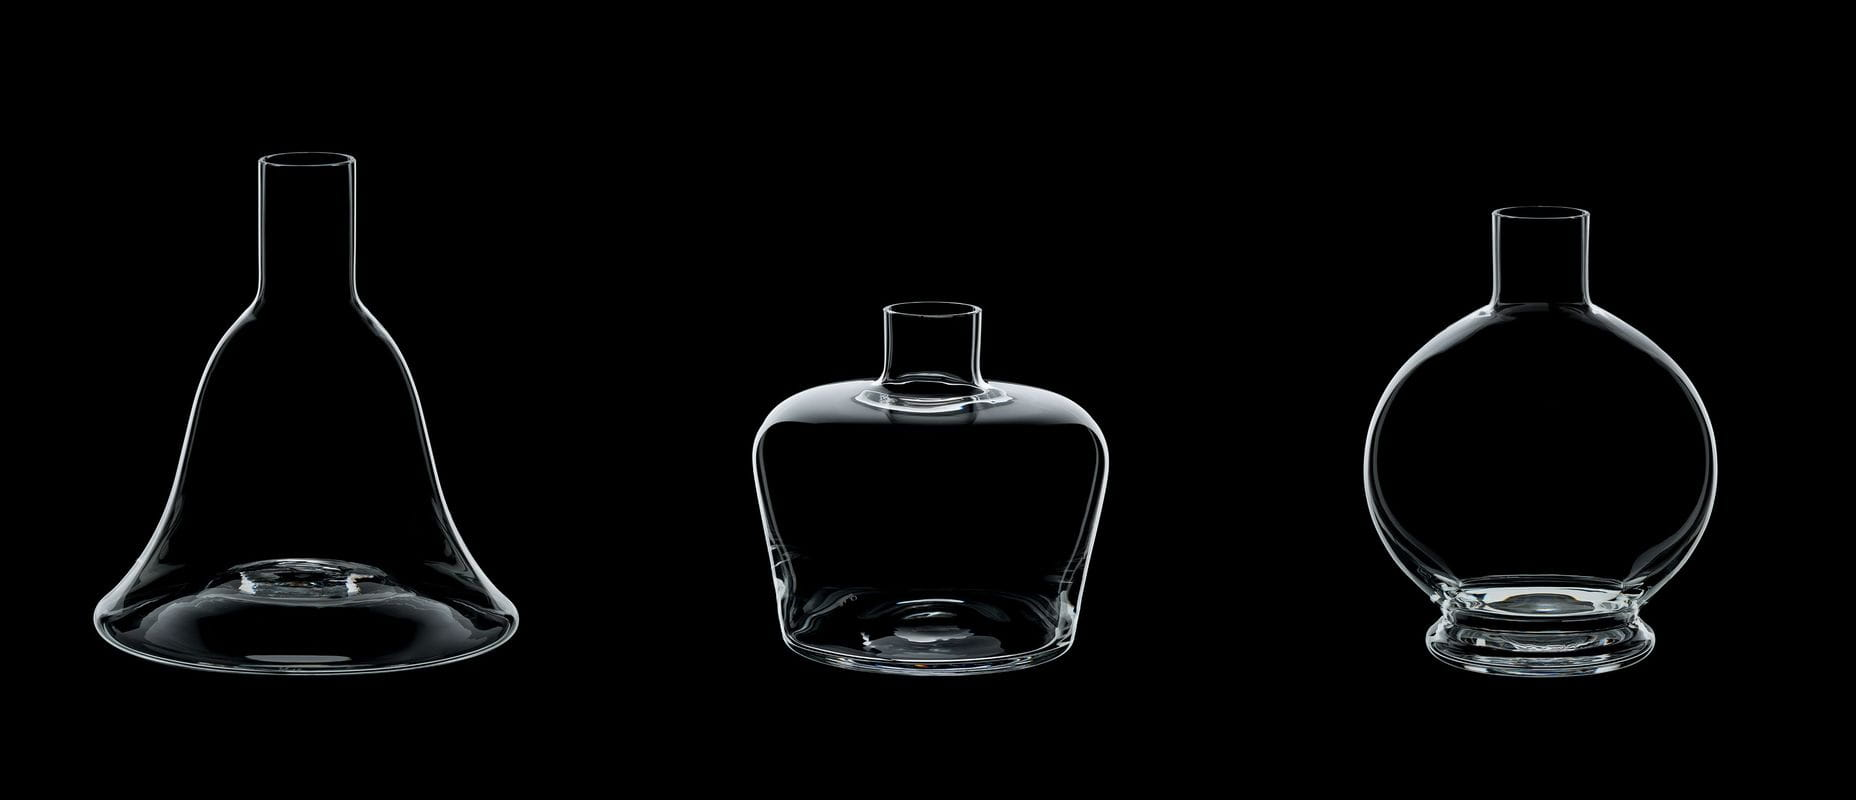 RIEDEL M Series decanters Macon-Margaux-Marne